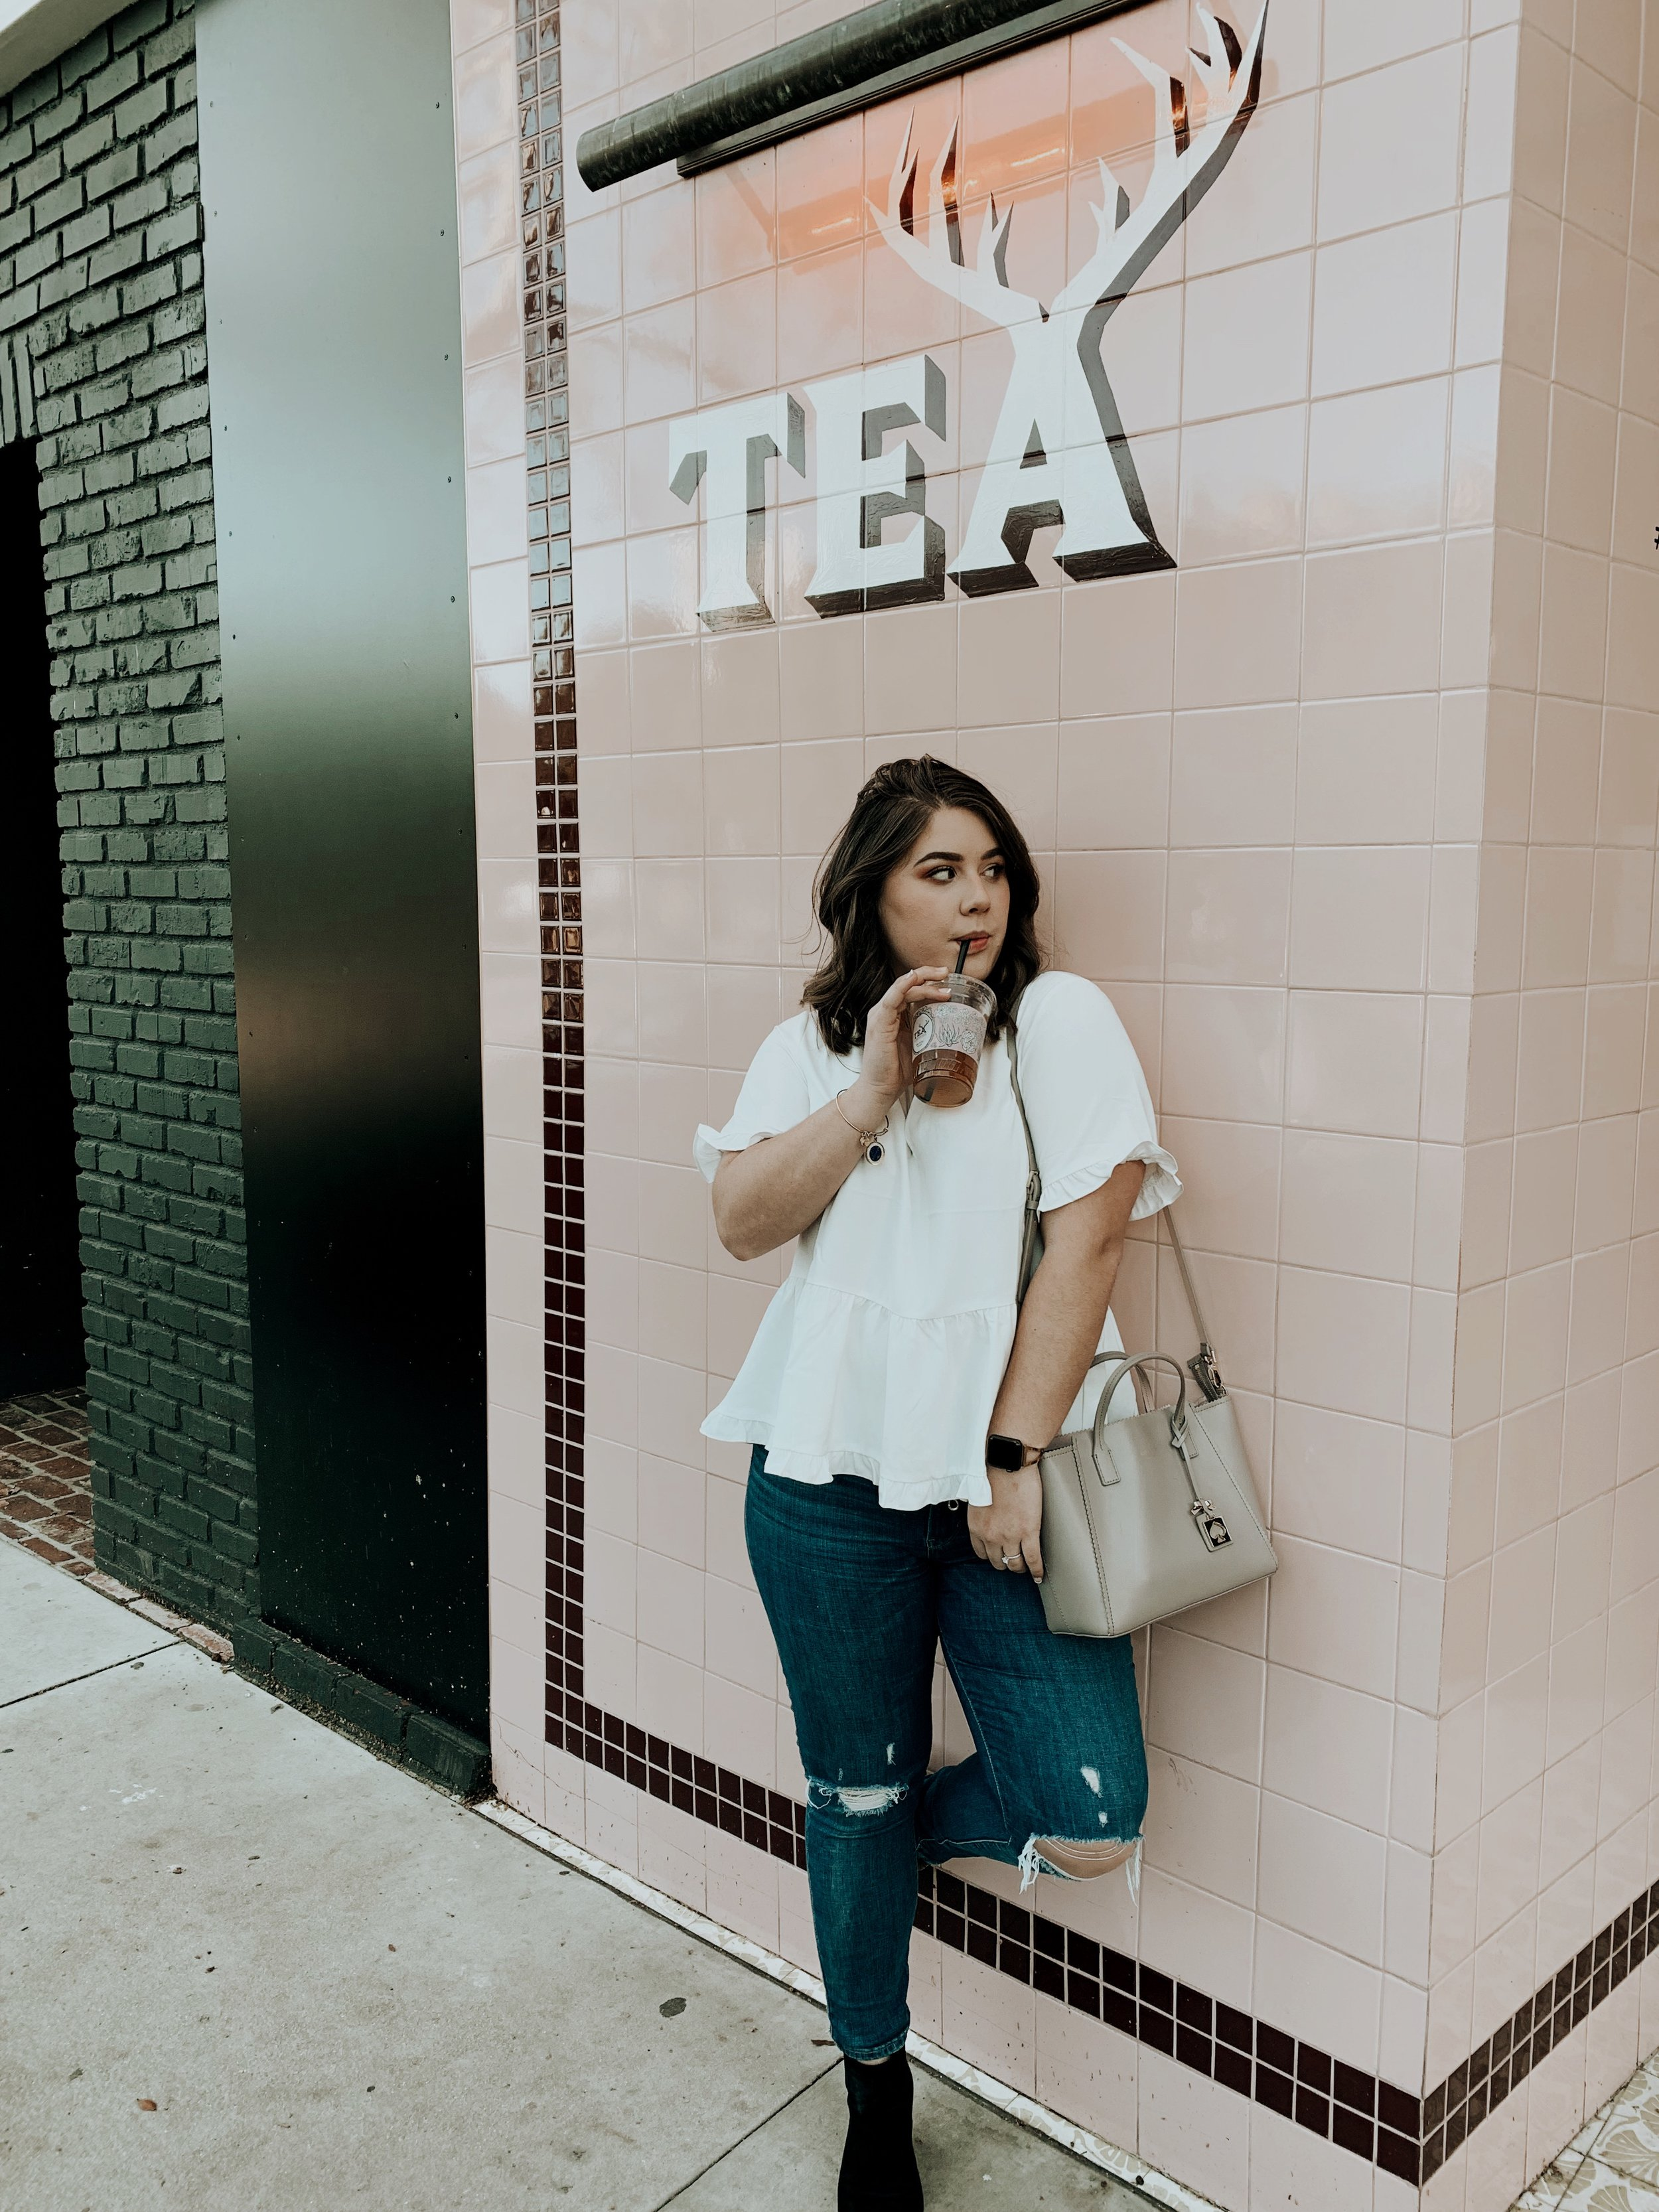 My Outfit : Top: Madewell | Jeans: Levis | Bag: Kate Spade